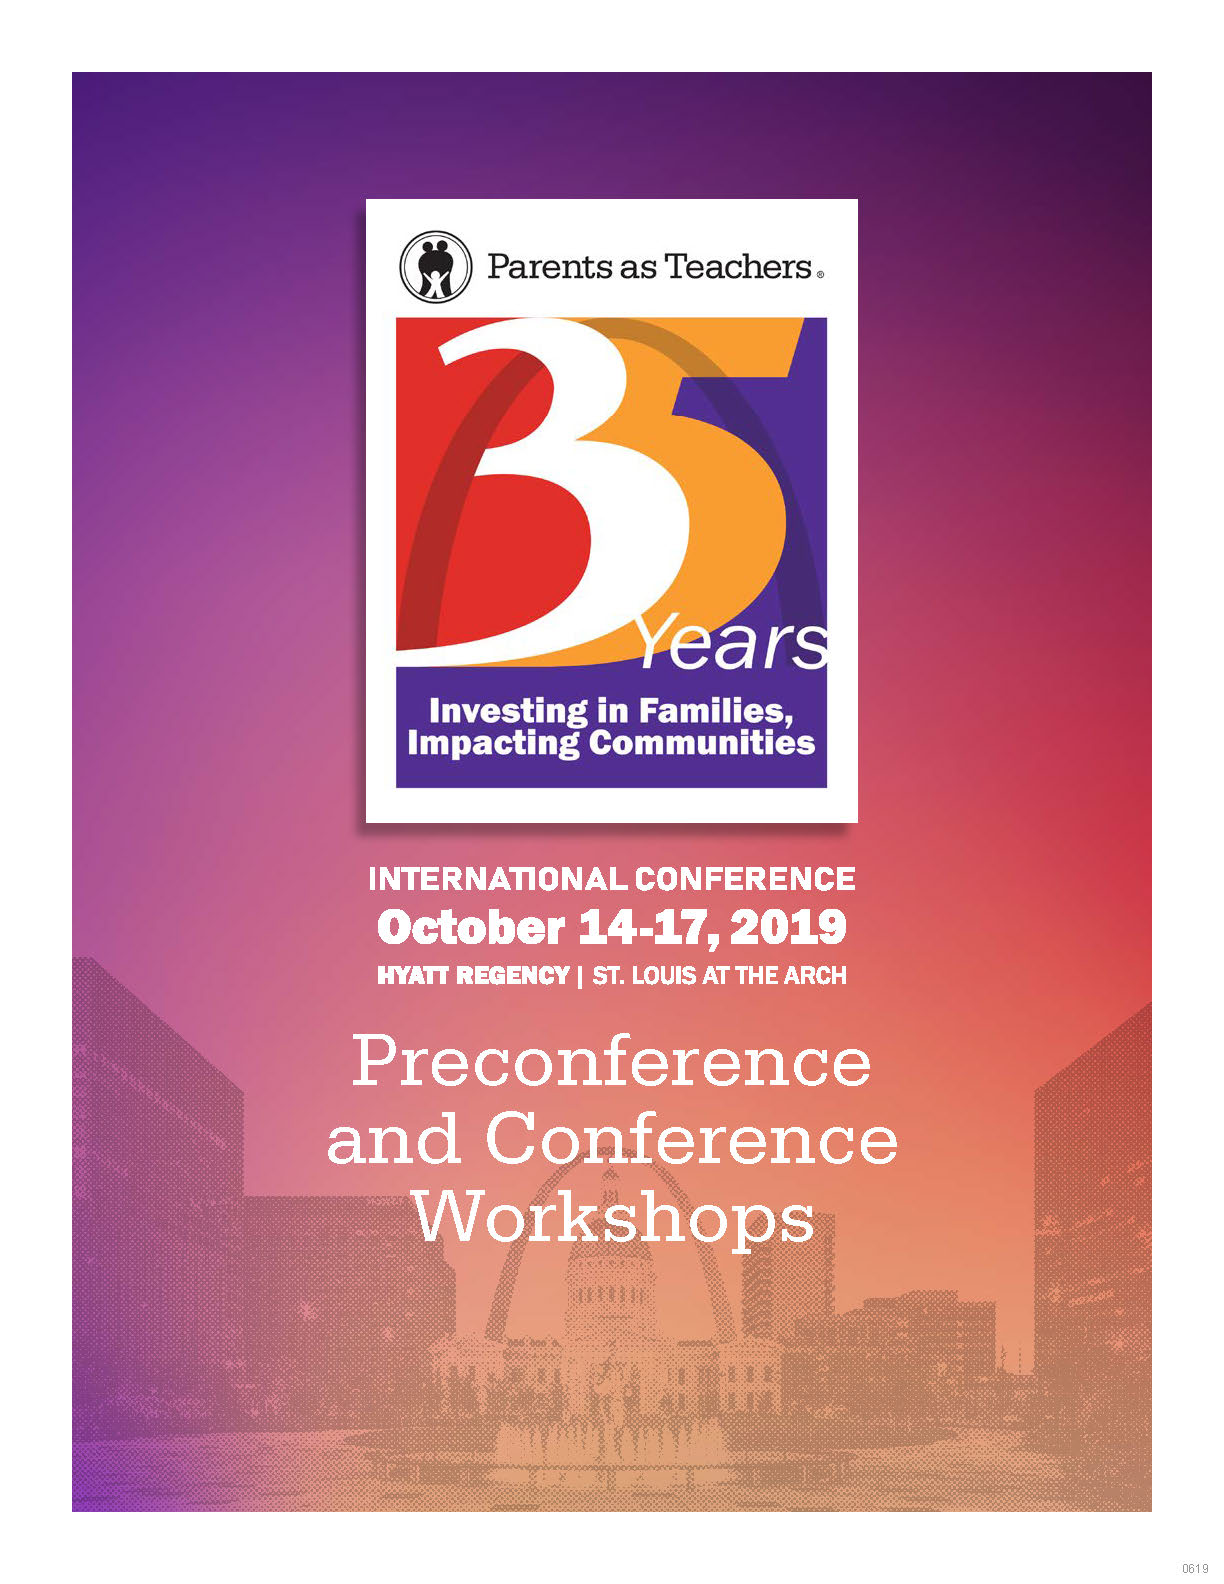 Click image above to download your free copy of the workshop schedule for #PATCON19